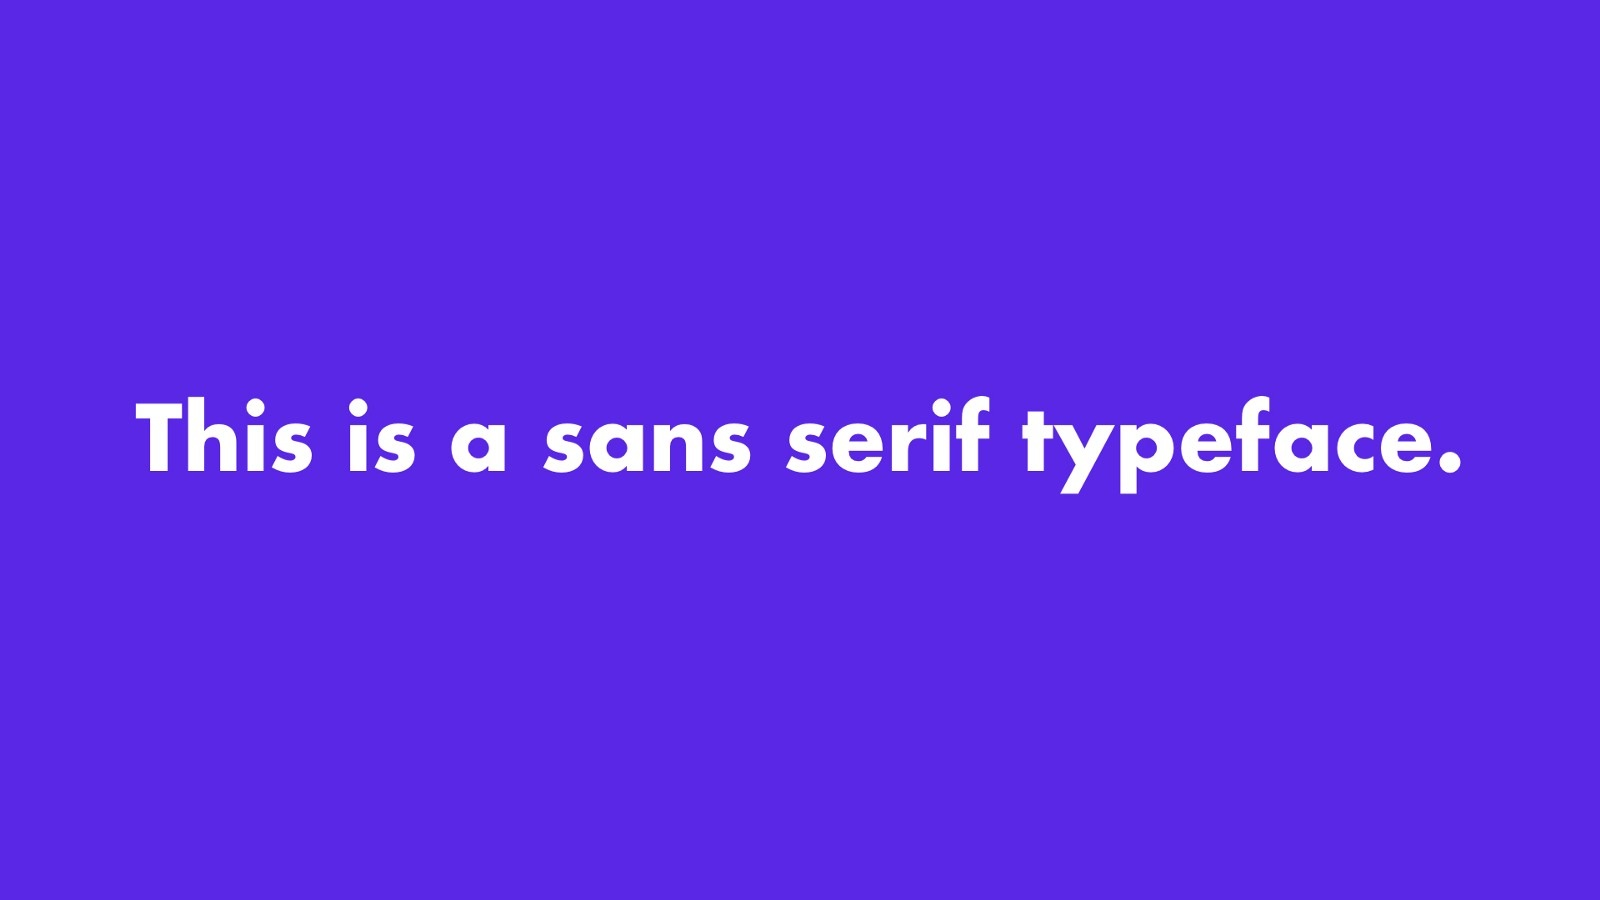 This is an example of a sans serif typeface